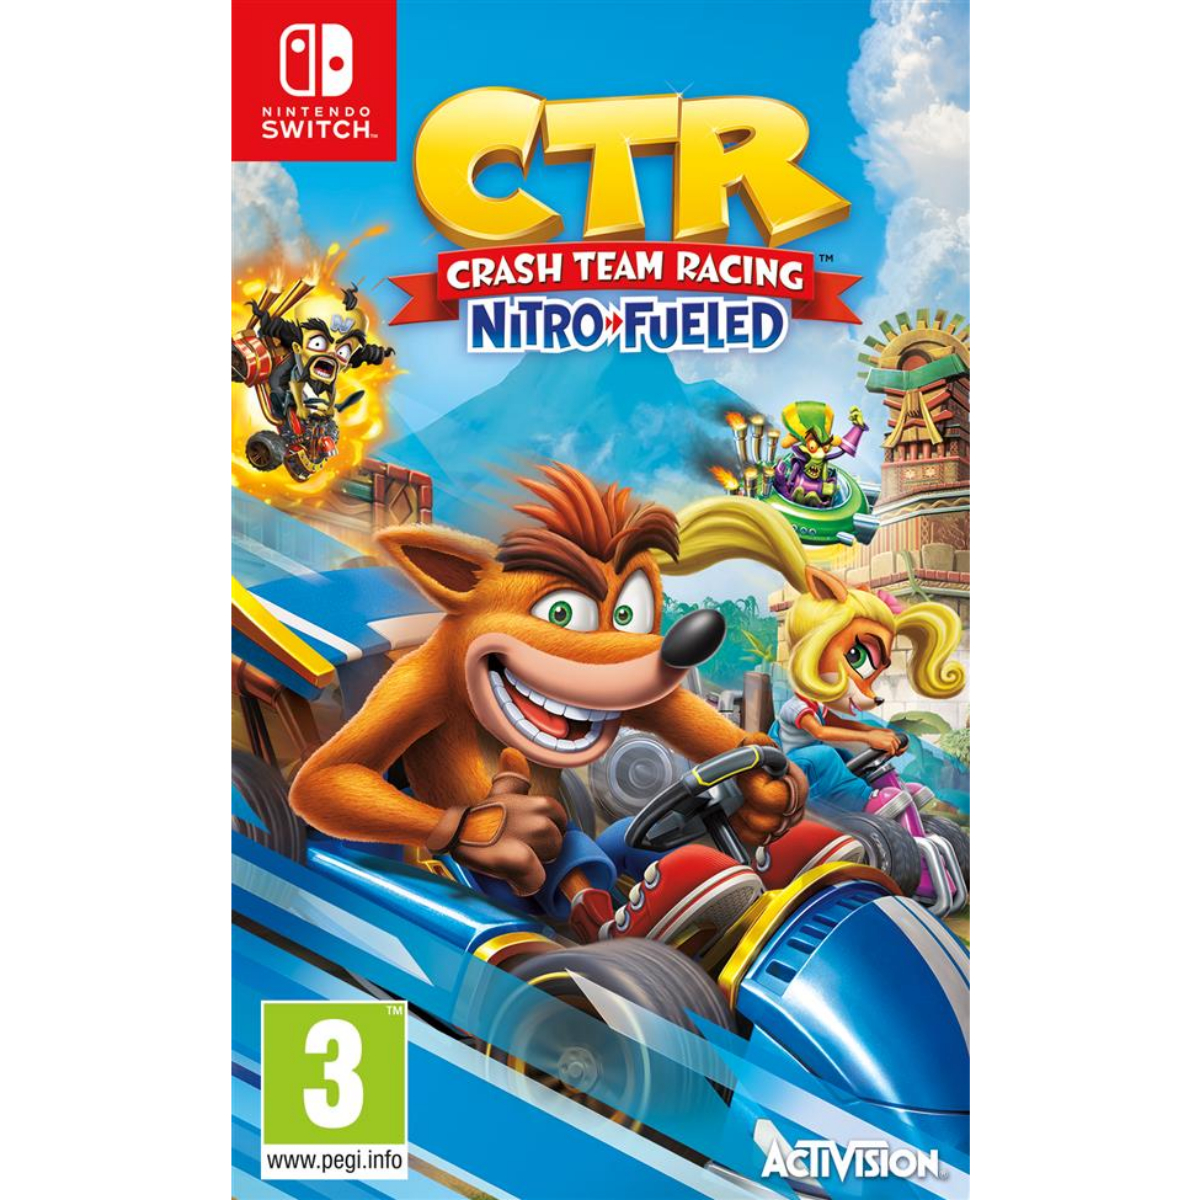 משחק לנינטנדו Crash Team Racing Nitro Fueled